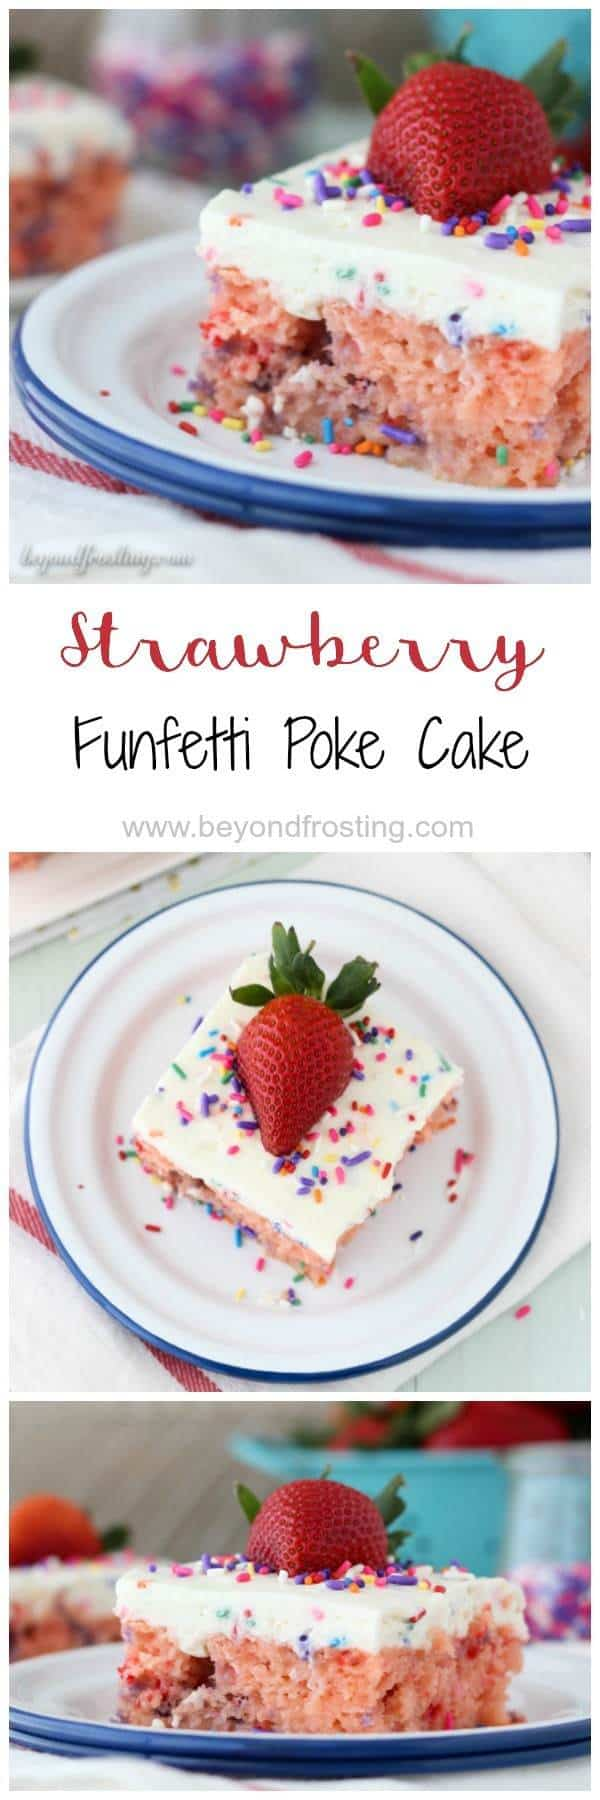 This Strawberry cake is soaked with sweetened condensed milk and topped with Funfetti whipped cream. The marriage of strawberry and Funfetti has never been so mouthwatering!